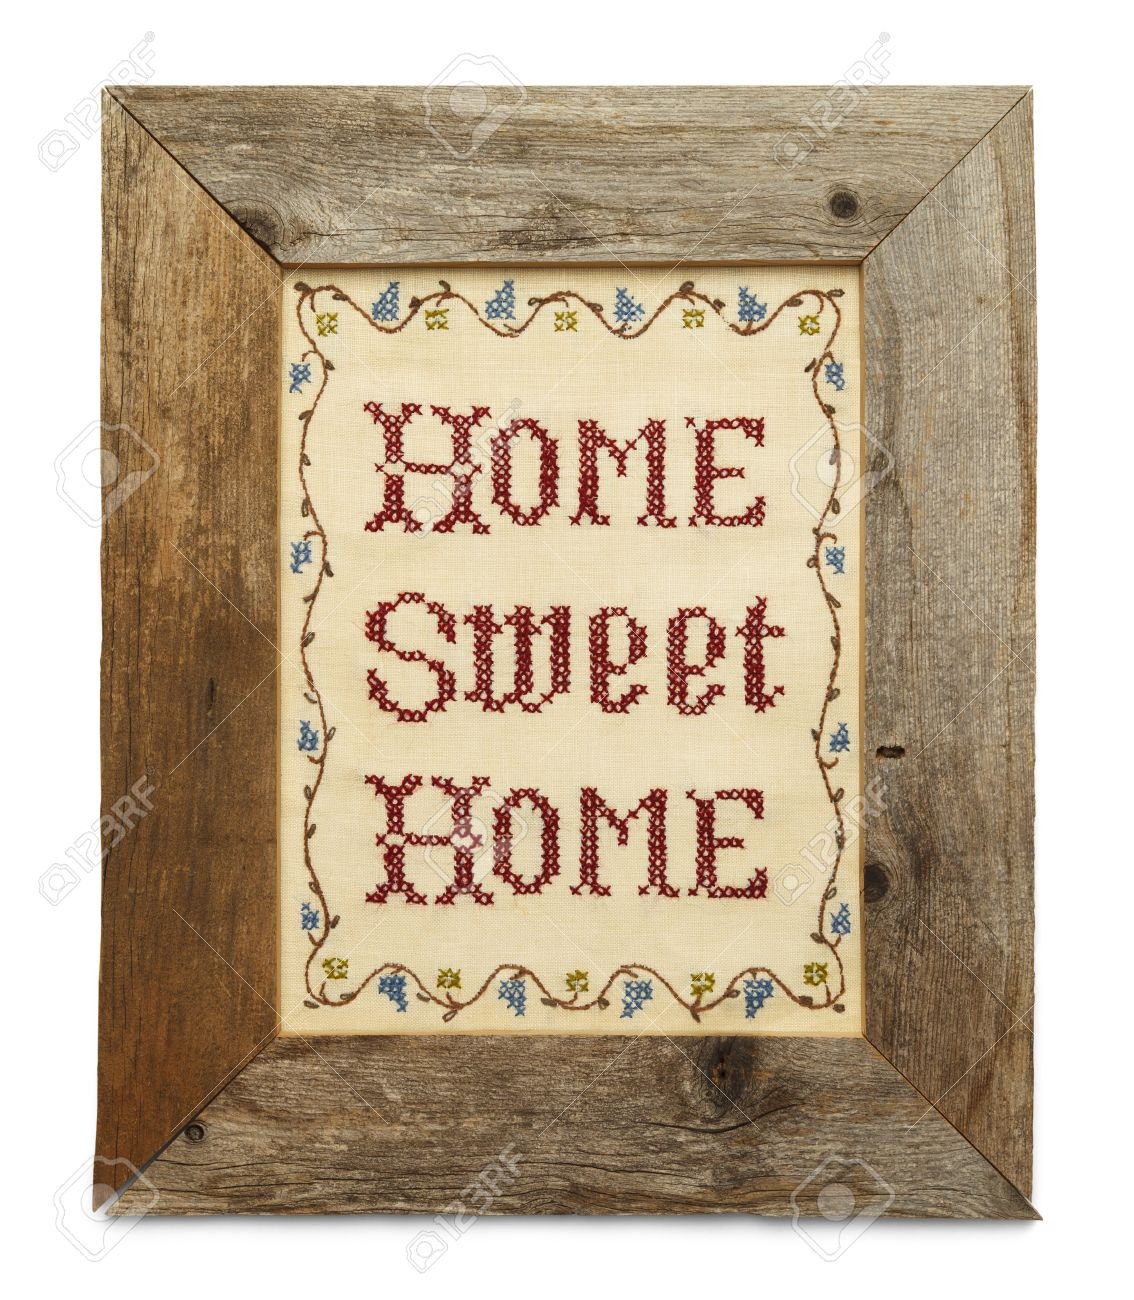 Home Sweet Home Cross Stitch In Rustic Wood Frame Isolated On